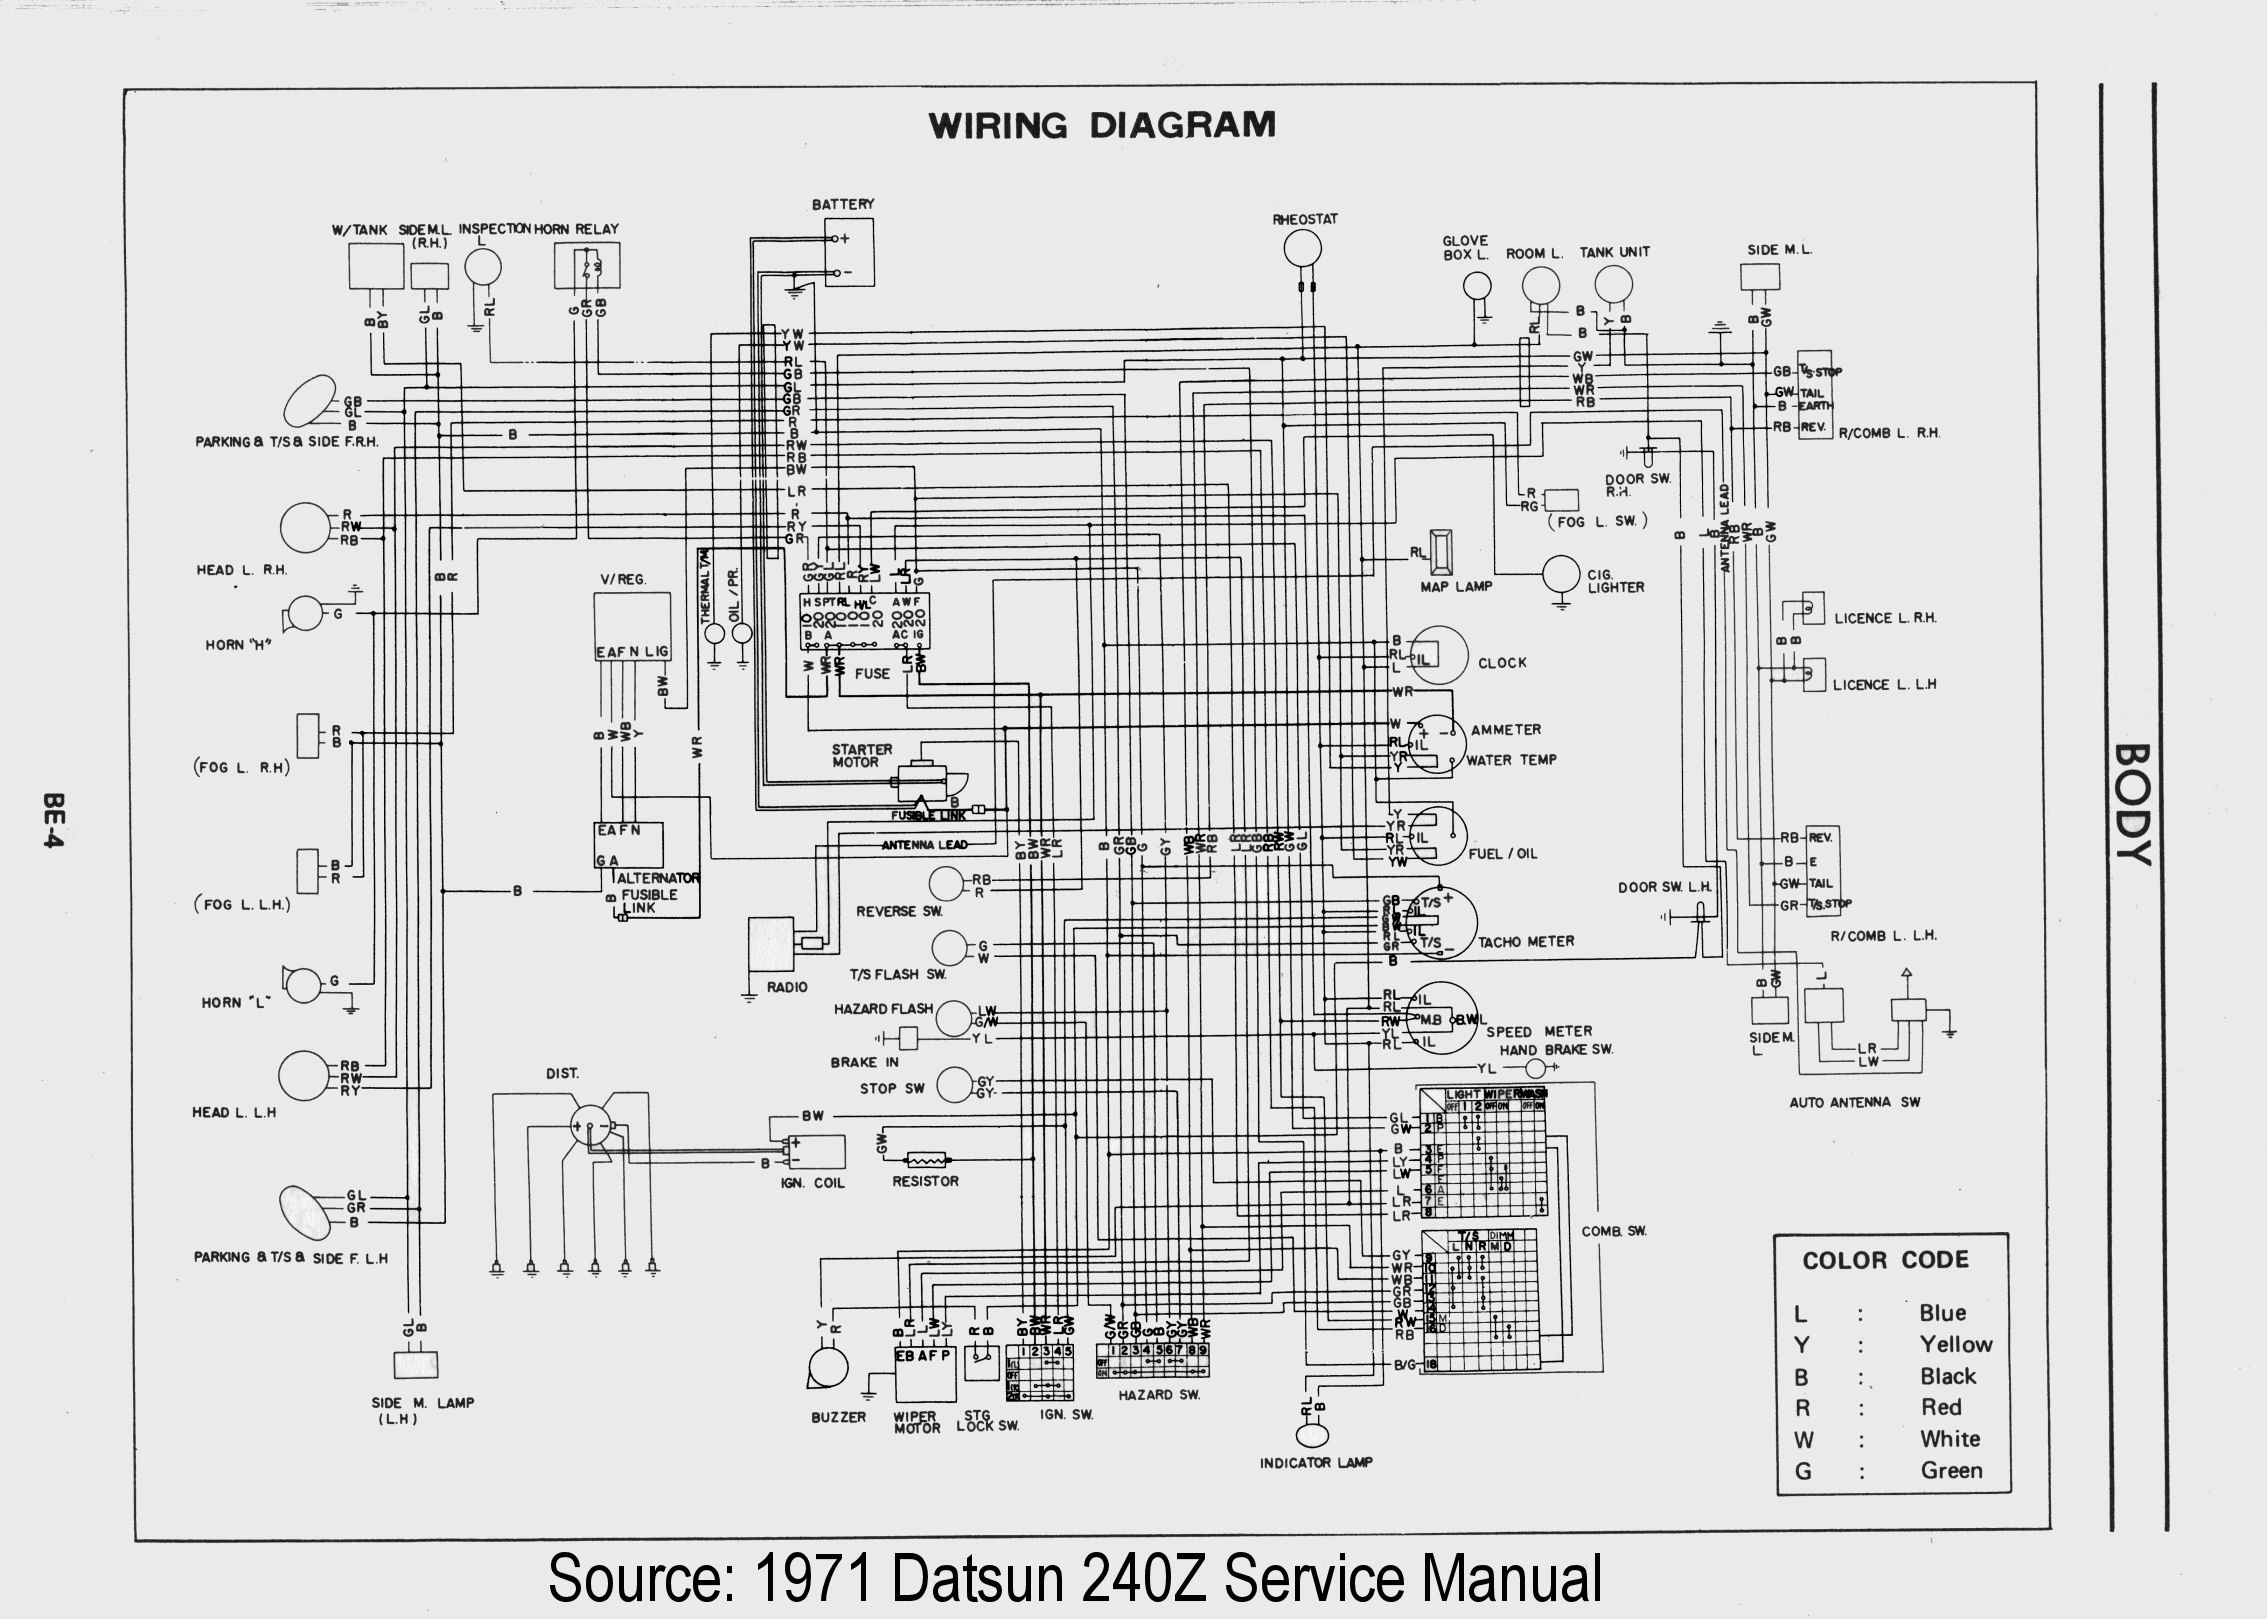 Wiring Diagram HiRes 2 generic wiring troubleshooting checklist woodworkerb datsun 280z wiring diagram at soozxer.org